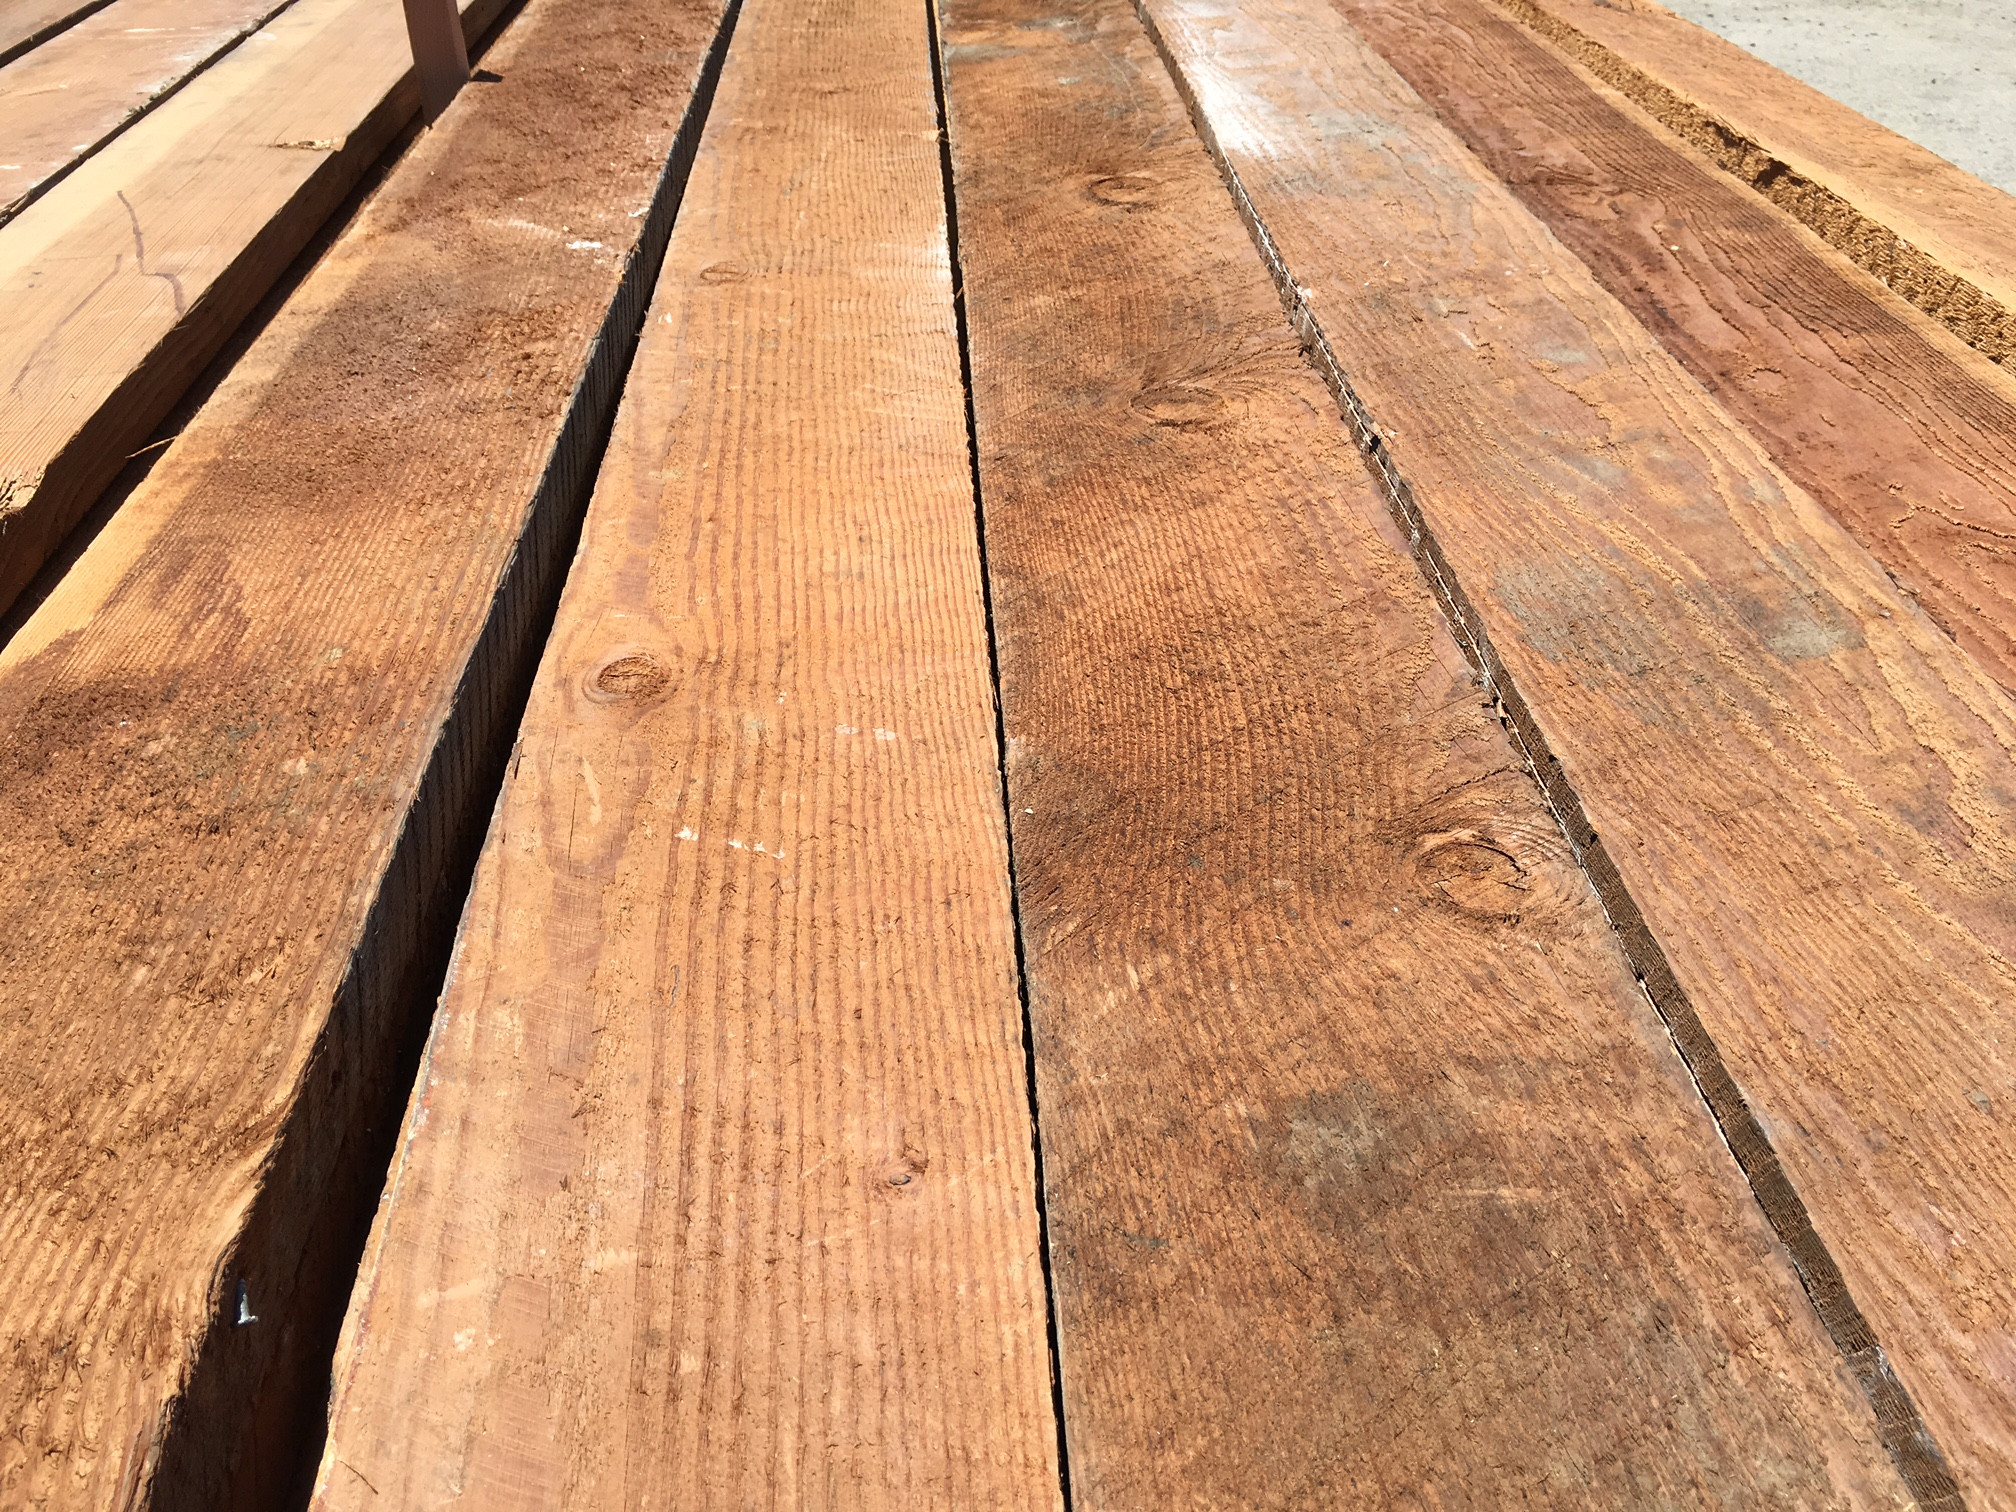 hardwood floor refinishing northern kentucky of heritage salvage heritage salvage throughout floor and ceiling joists from the historic novato theater perfect for milling shelving table tops and more large supply available